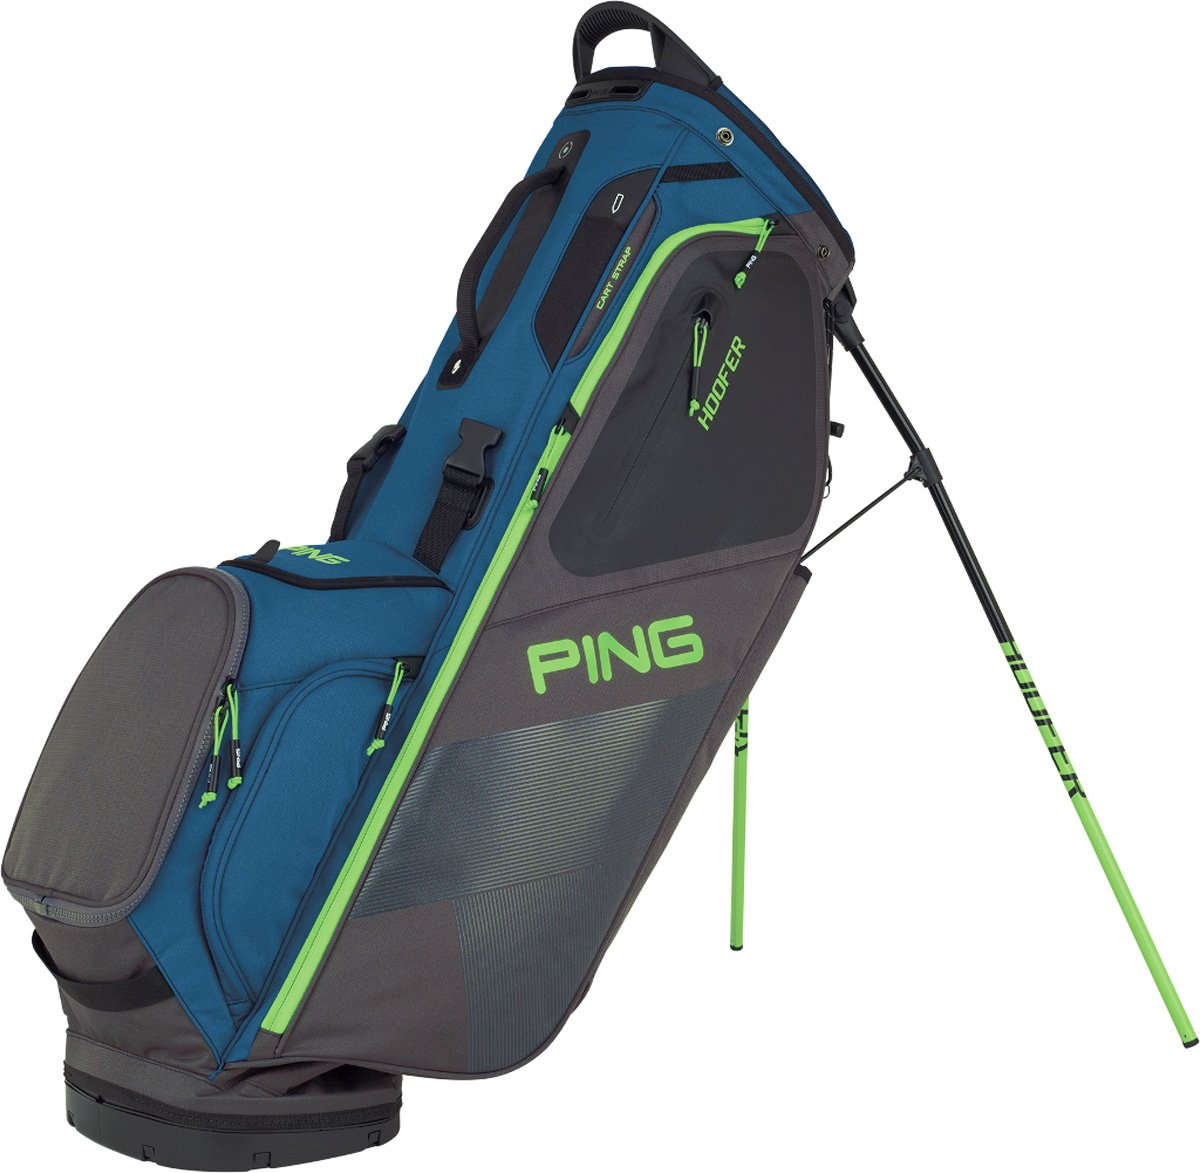 NEW 2018 Ping Hoofer Teal/Graphite/Electric Green Golf Carry/Stand Bag